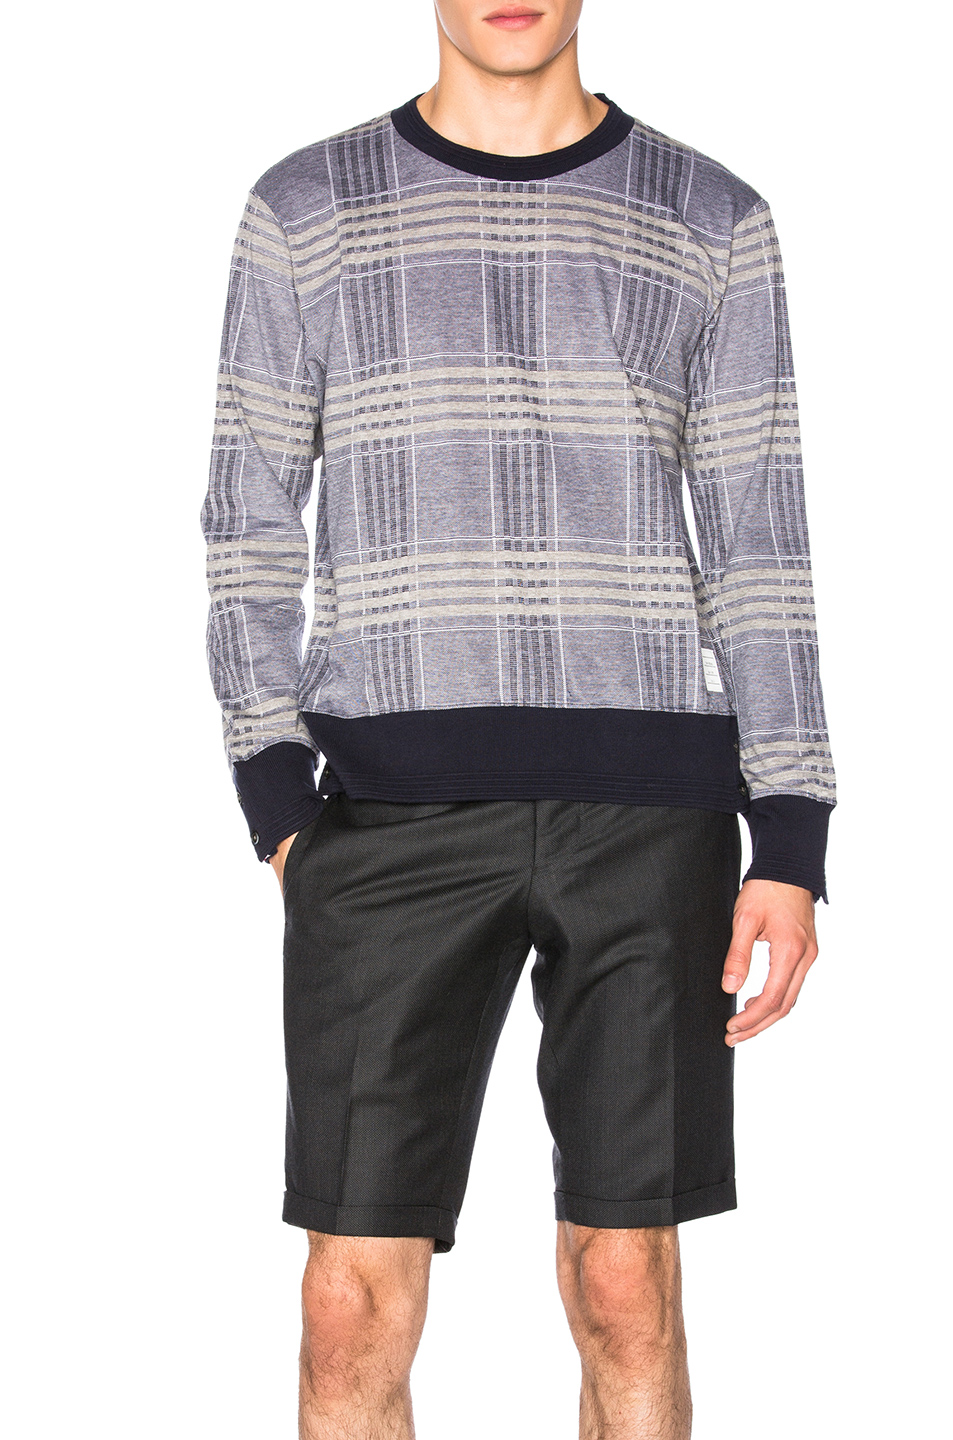 Thom Browne Oversize Check Pique Long Sleeve Tee in Blue,Checkered & Plaid